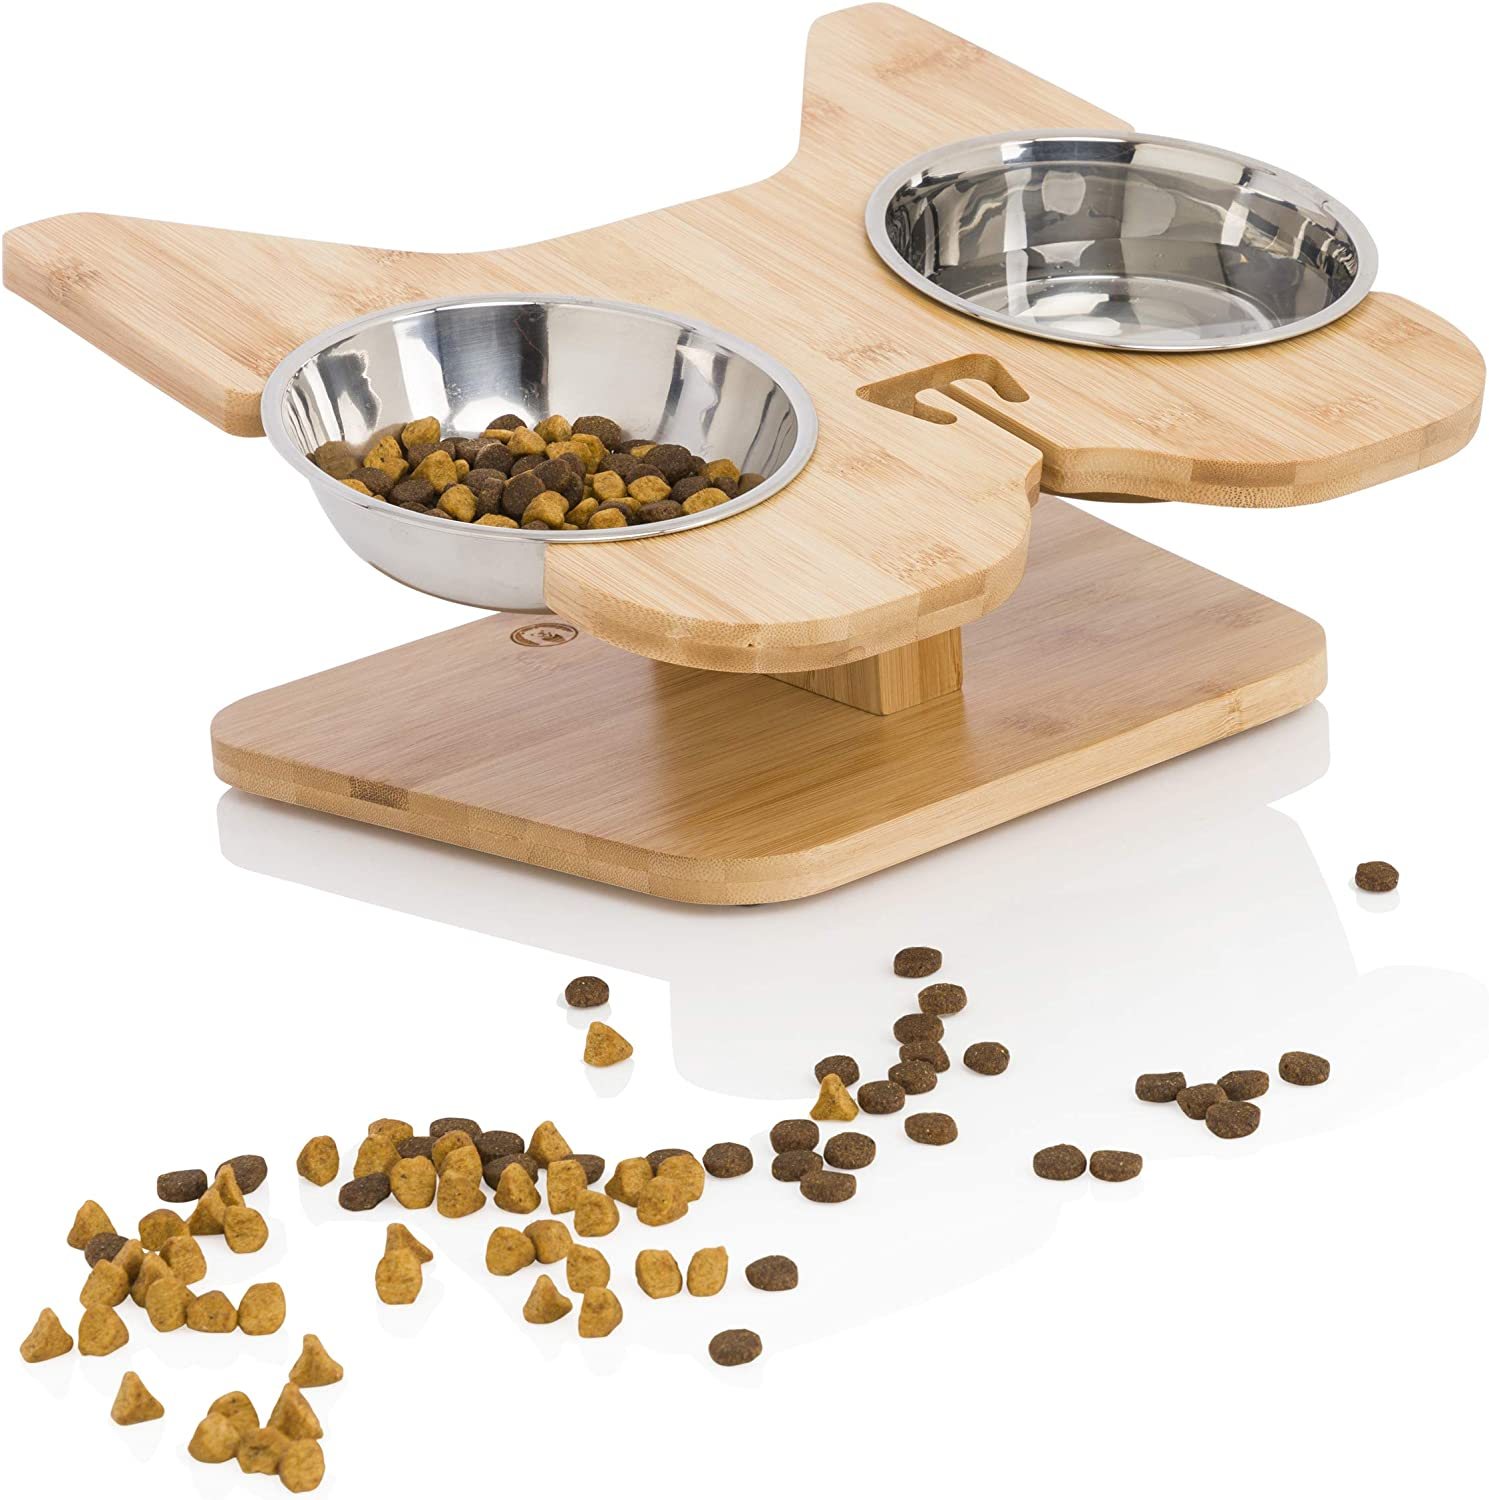 NibbleyPets Elevated Dog Bowl Stand with Stainless-Steel Food and Water Bowls (3 Pc. Set) | Stand-Up Eating and Drinking | Pet Friendly Ergonomic Design | Perfect for French Bulldogs, Pugs